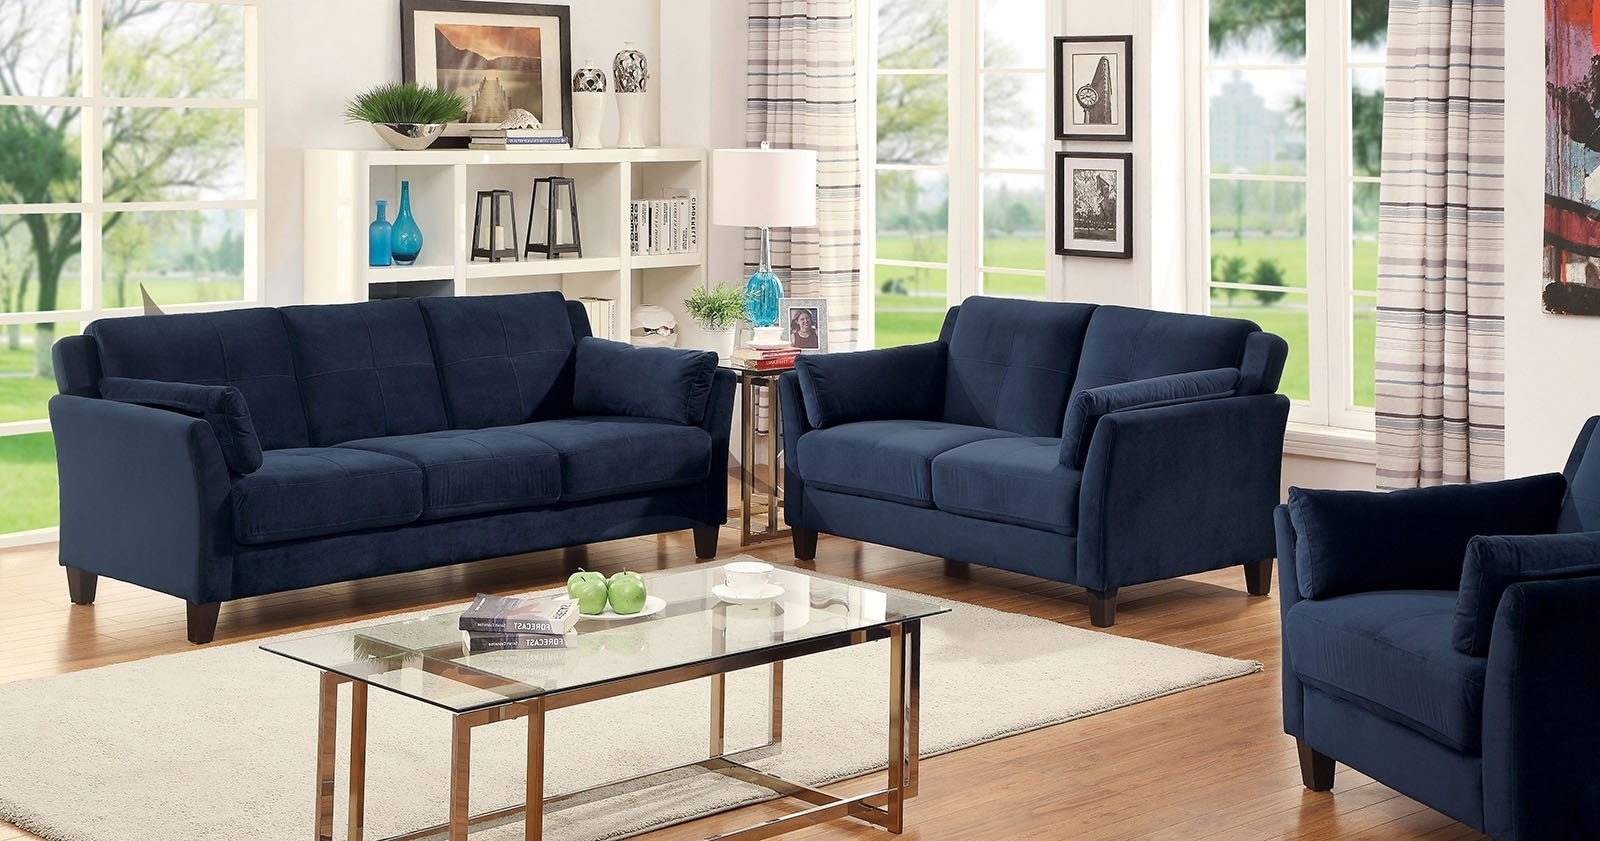 Sale 249494 Royal Home Sofa Set Riva Dark Blue 3pc Sofa Awesome For Best And Newest Dark Blue Sofas (Gallery 14 of 20)